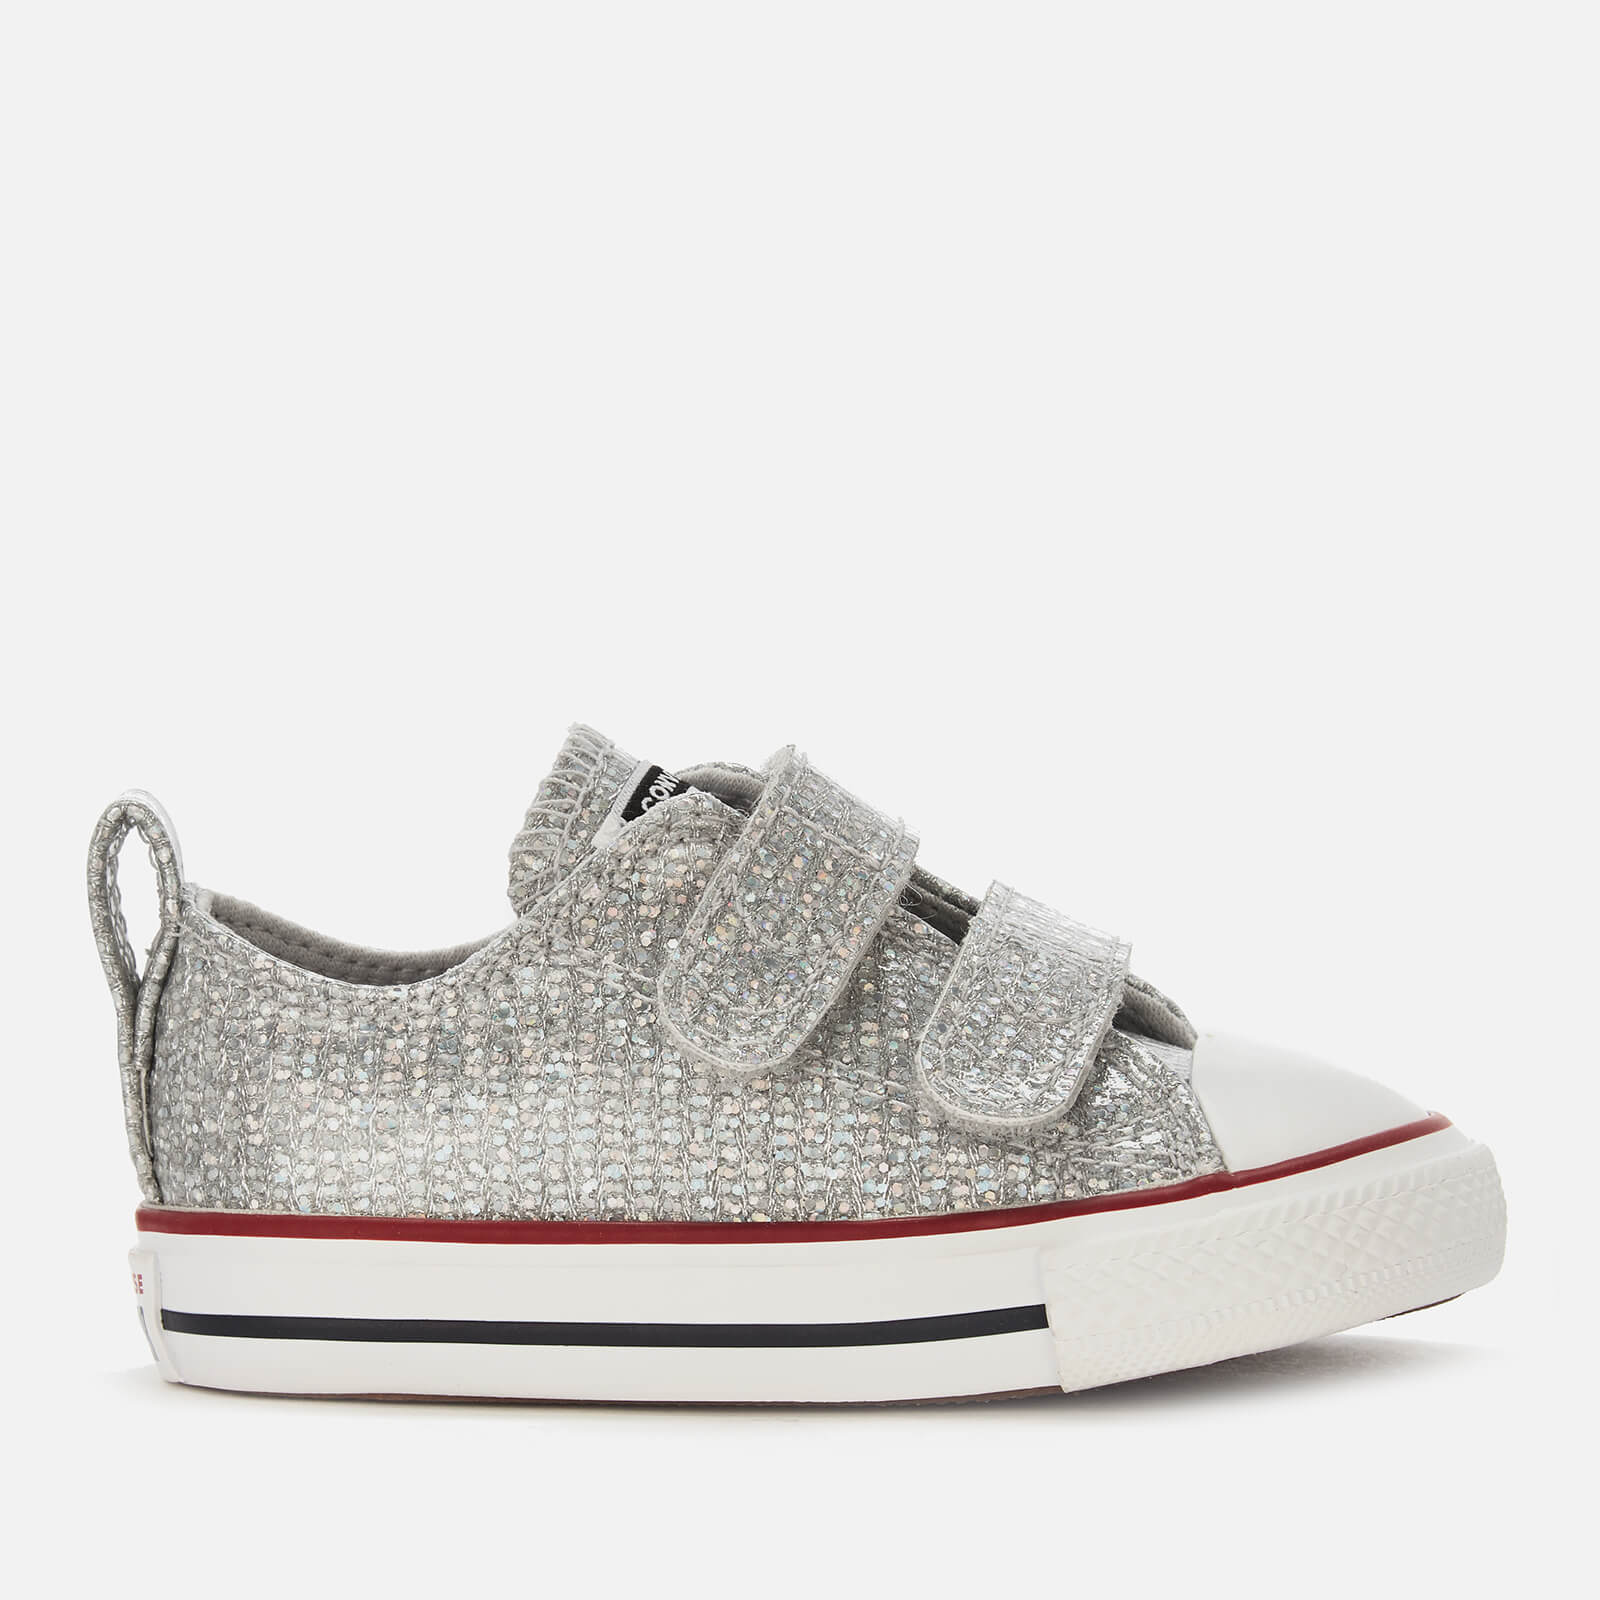 8c85650ce78c Converse Toddlers  Chuck Taylor All Star 2 Velcro Ox Trainers -  Mouse Enamel Red White Junior Clothing